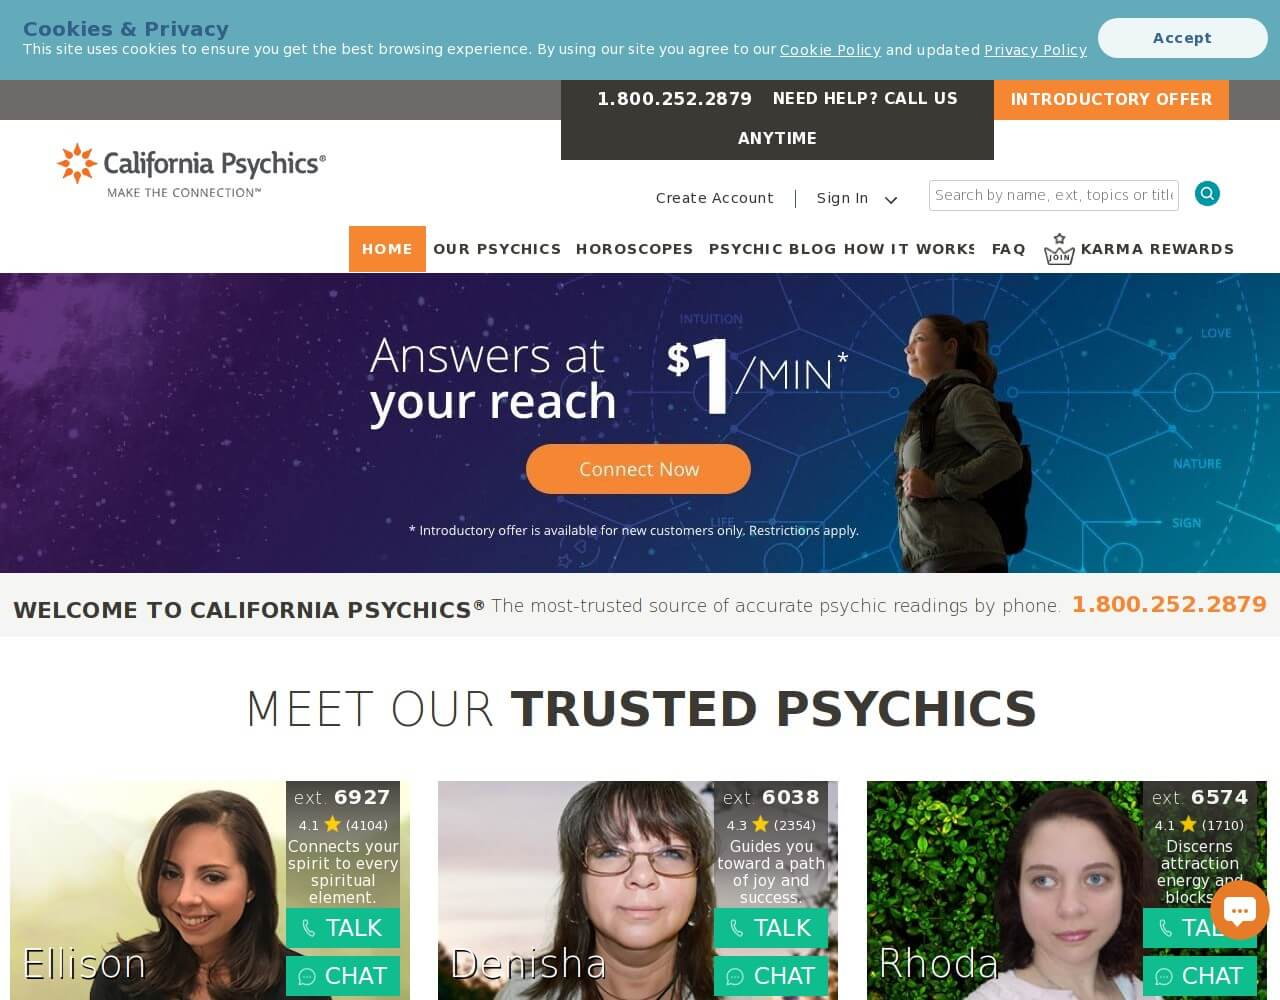 californiapsychics.com